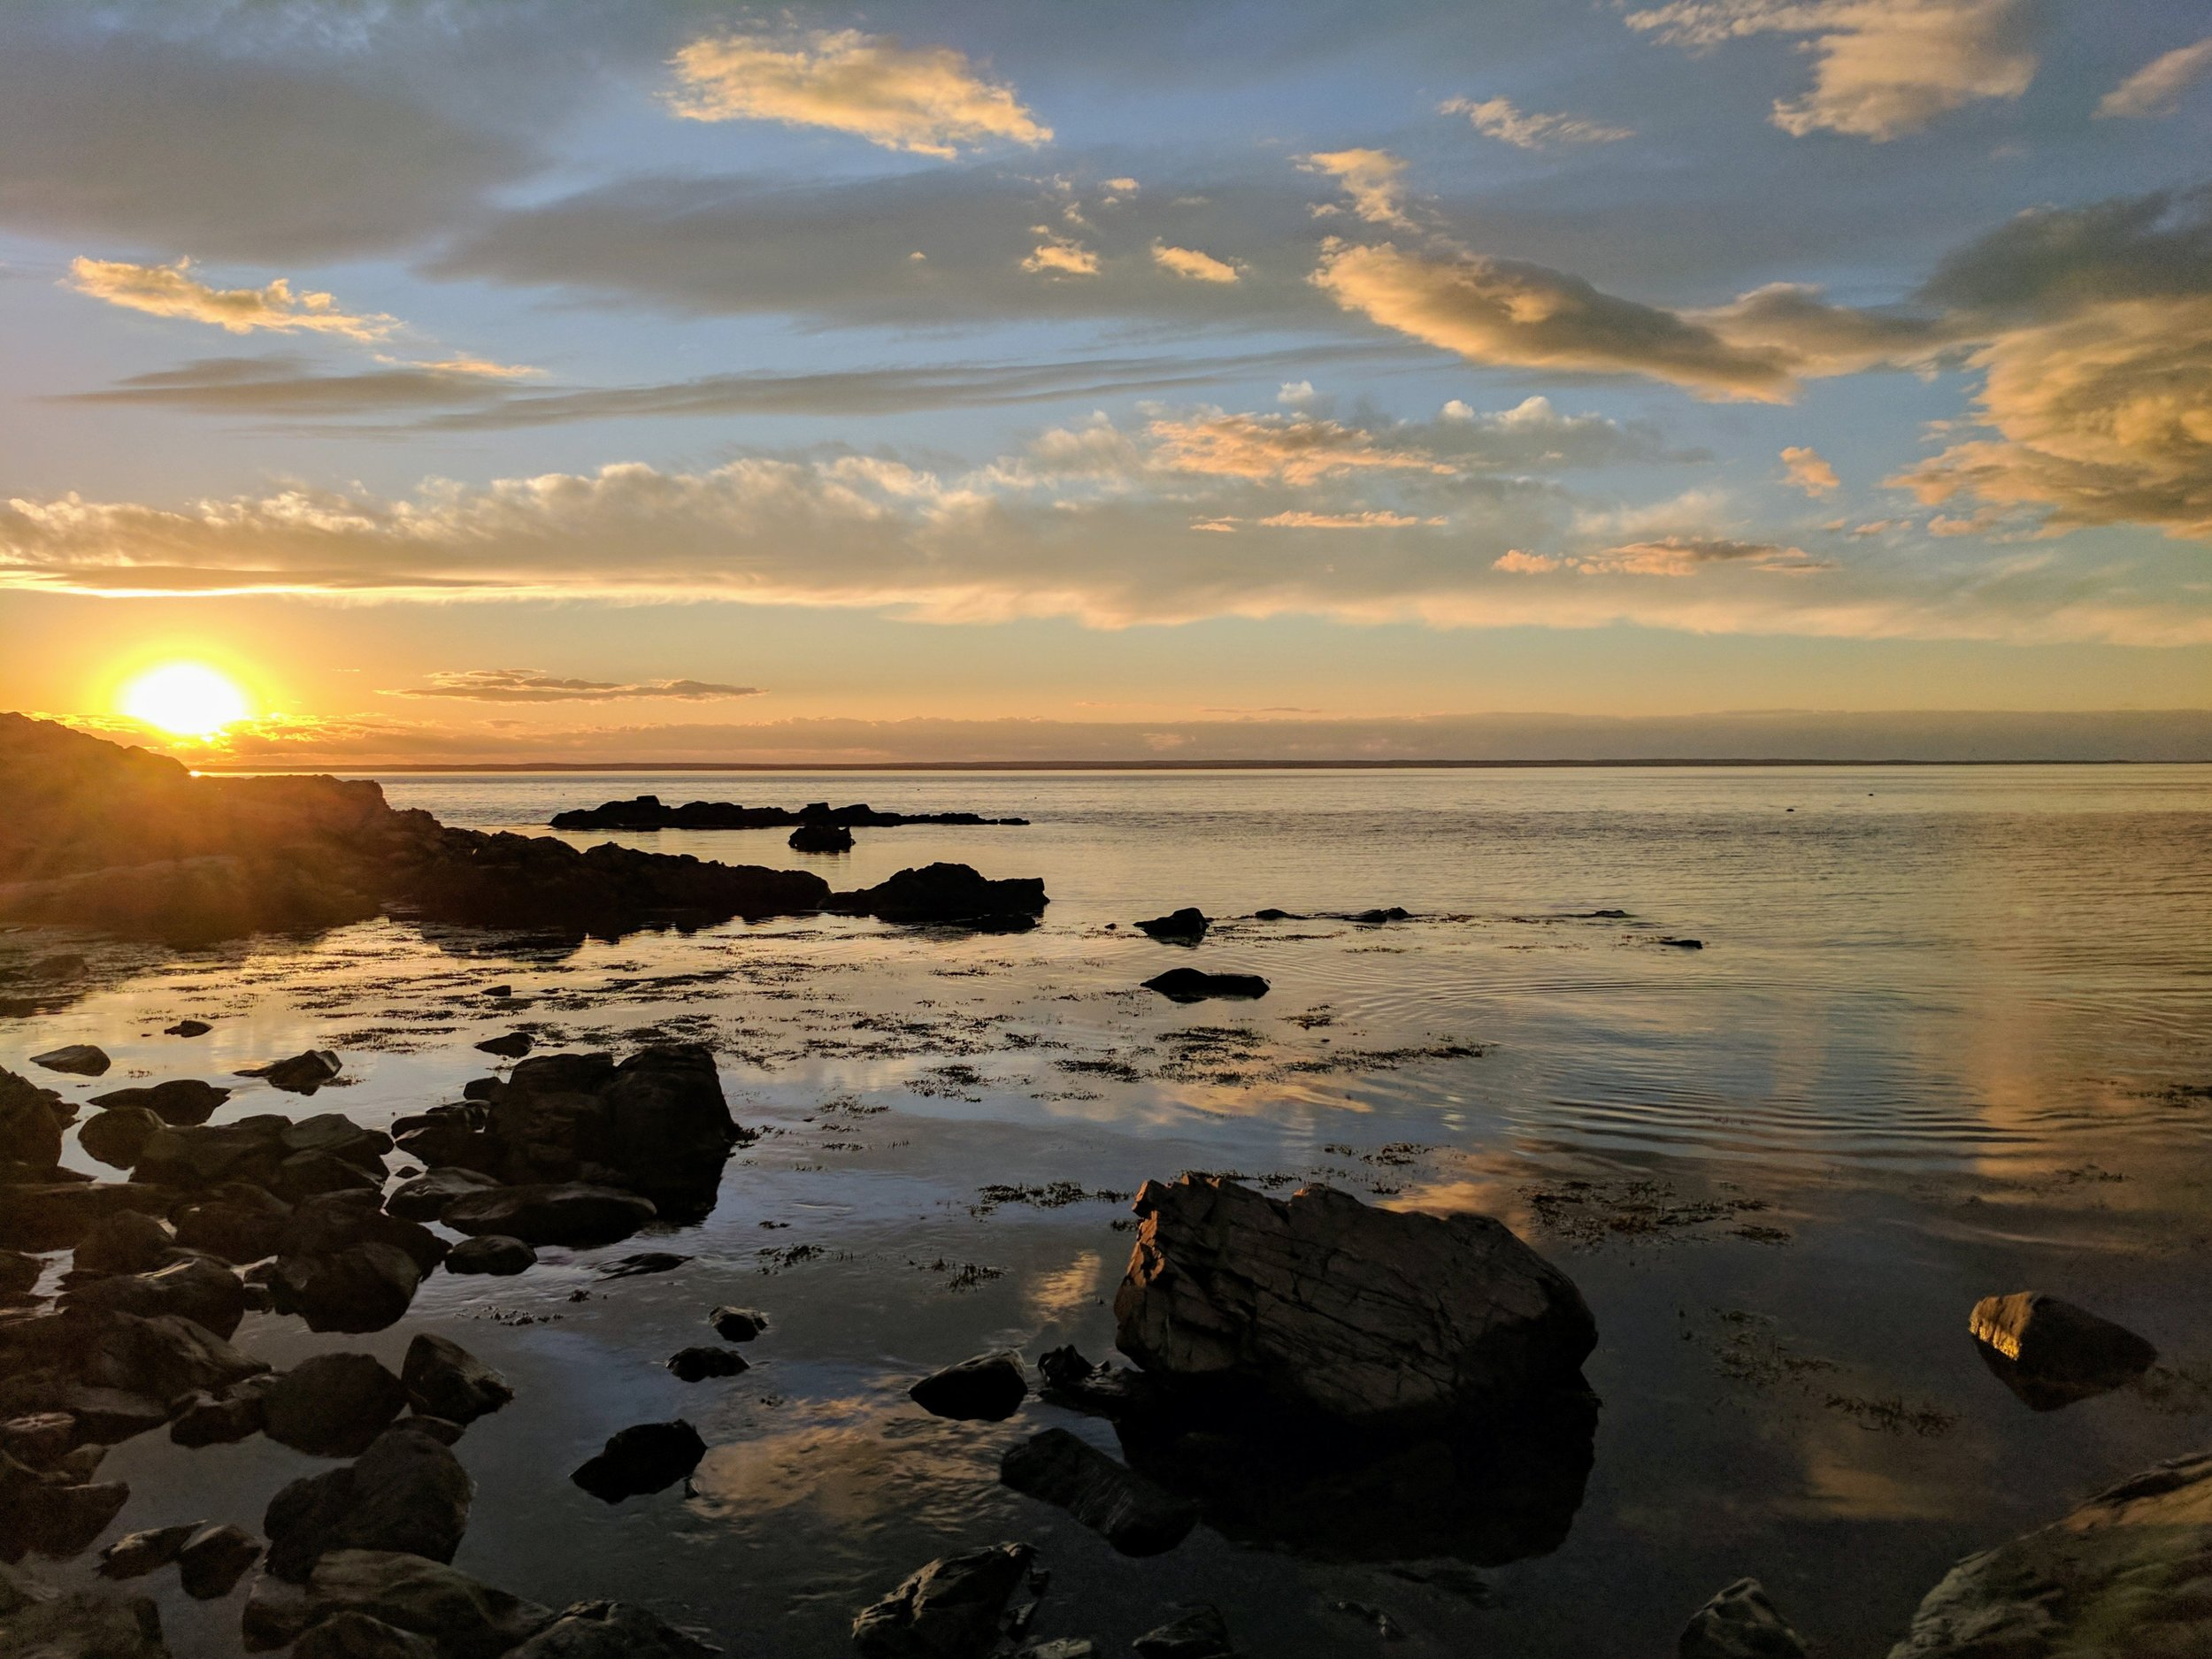 sunset-over-water-by-rocky-shore_4460x4460.jpg